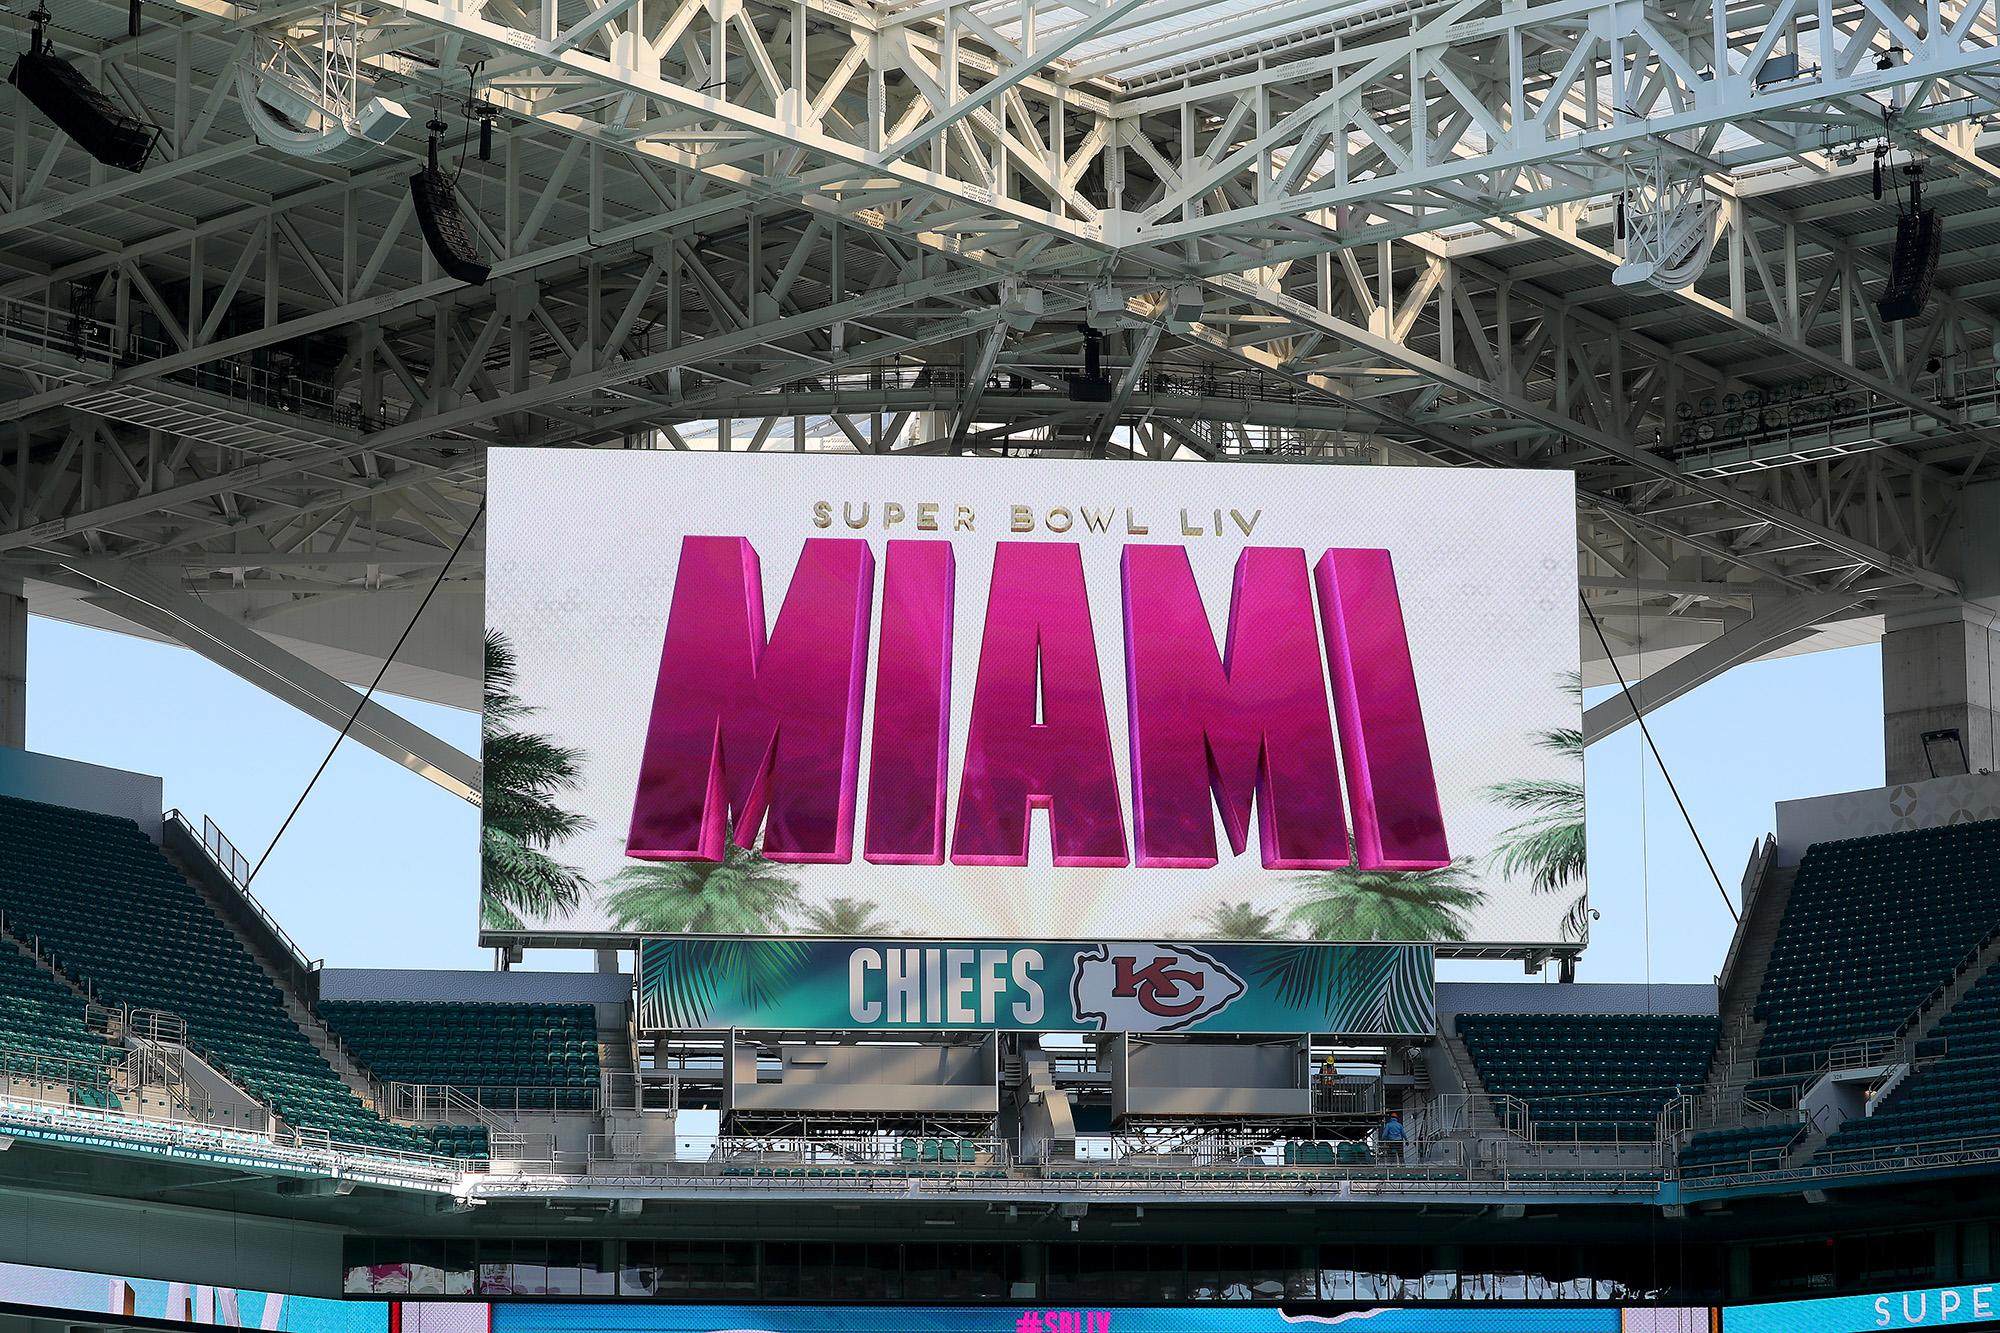 Super Bowl LIV tickets pacing for most expensive average price in NFL history